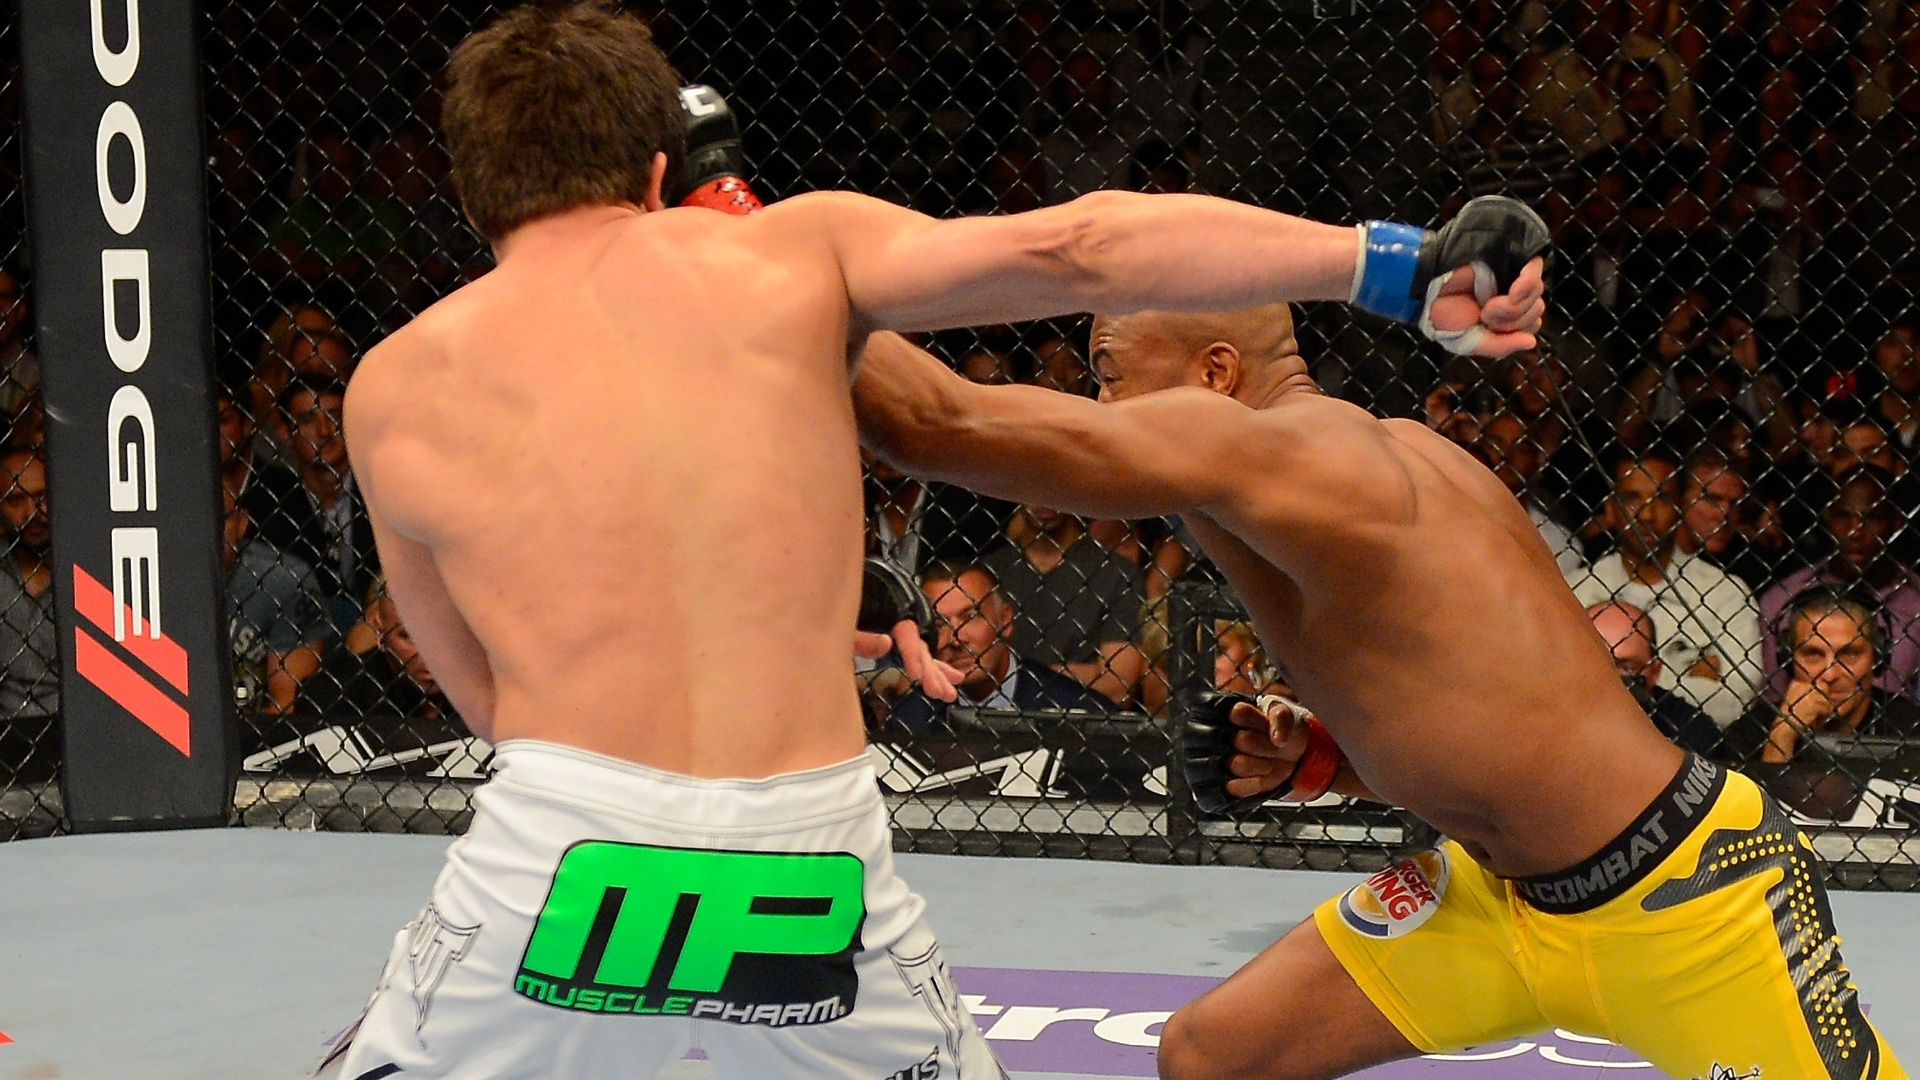 Anderson Silva venceu Chael Sonnen por nocaute no 2 round e manteve o cinturo dos pesos mdios